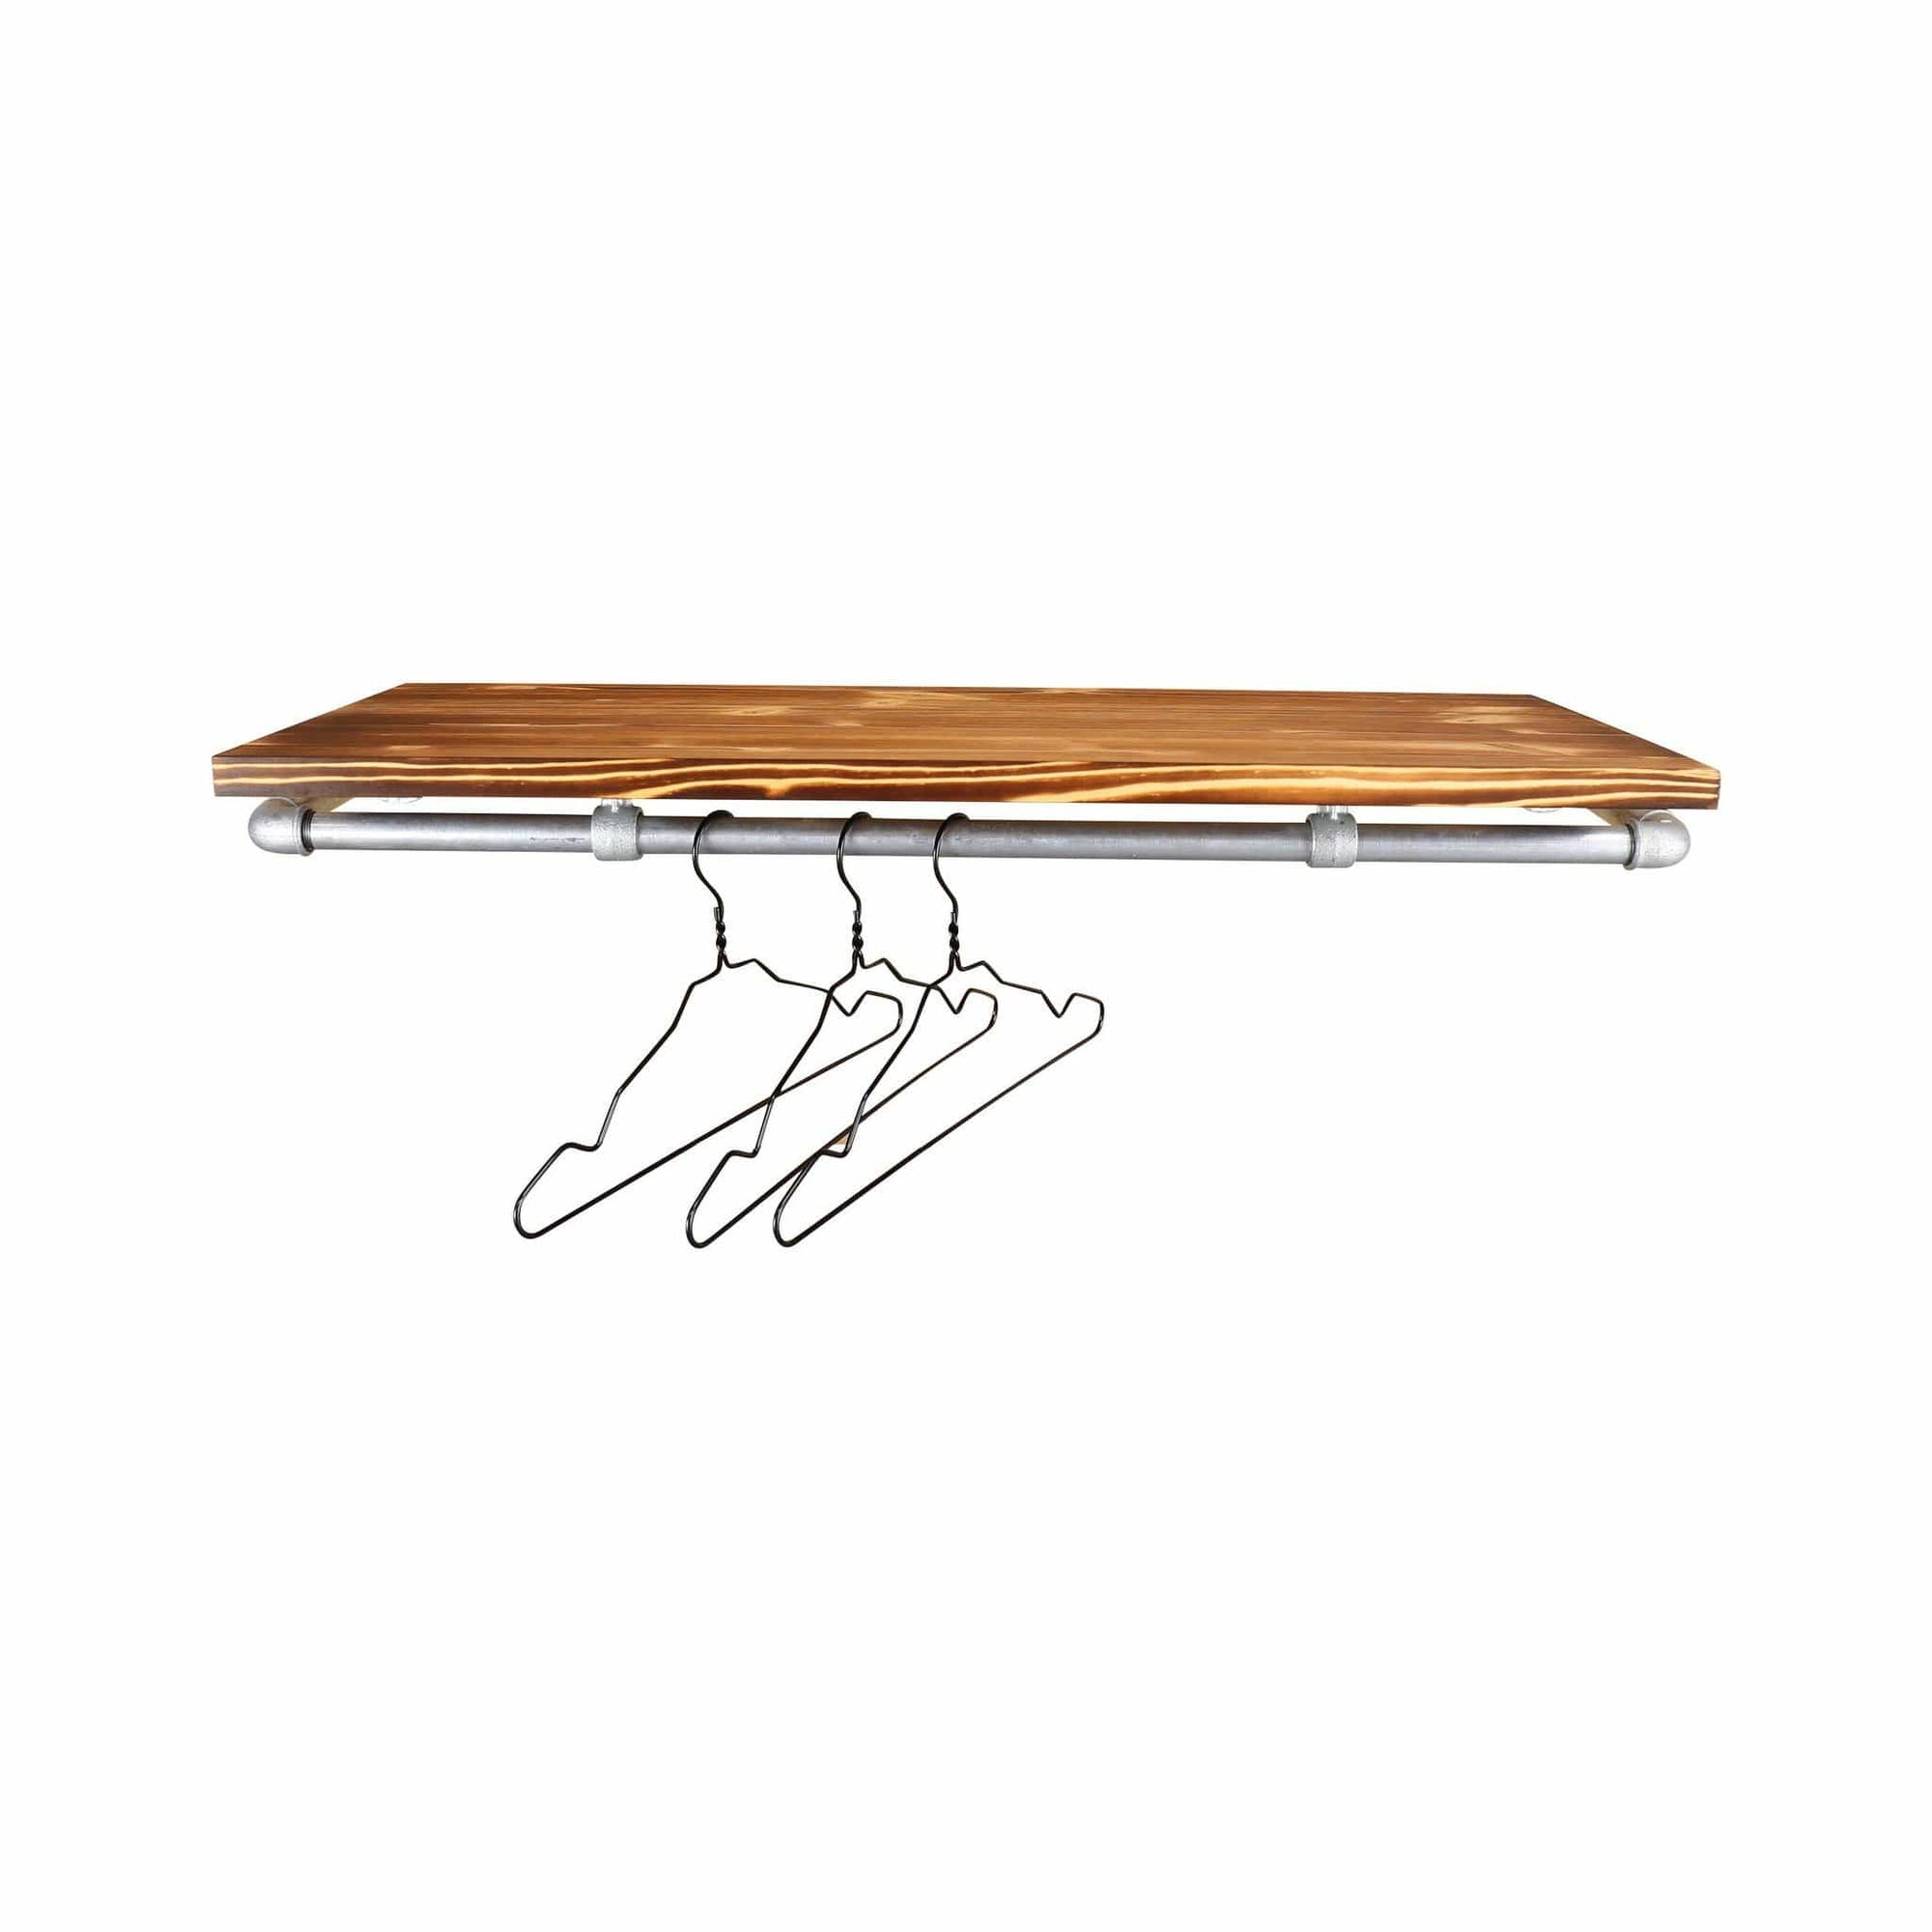 Railhang Shelf - Ziito SE